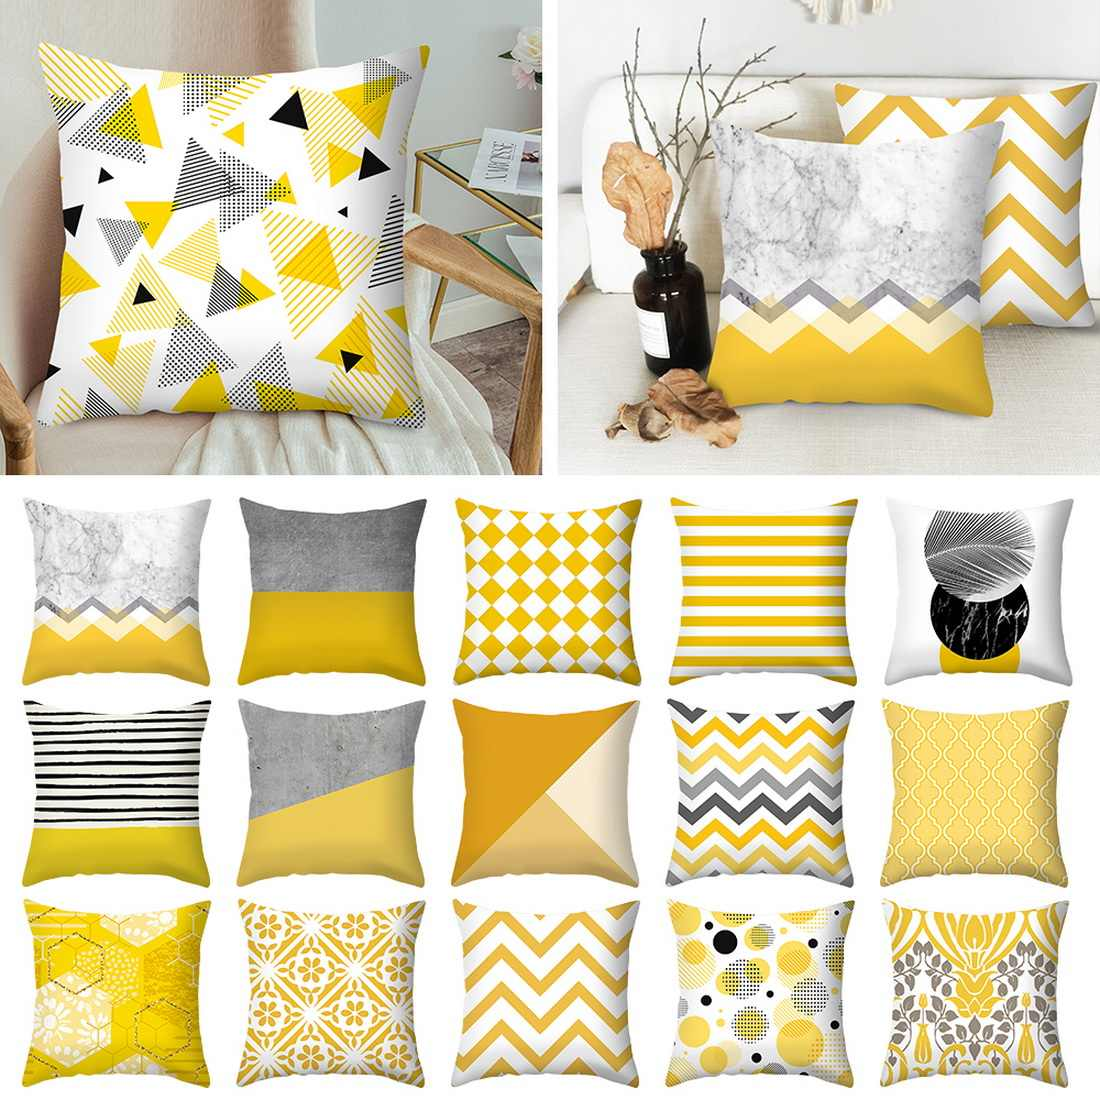 Urijk Yellow Geometric Printed Throw Pillow Case Sofa Car Waist Cushion Cover Office Kussenhoes Housse de Coussin Pillowcase